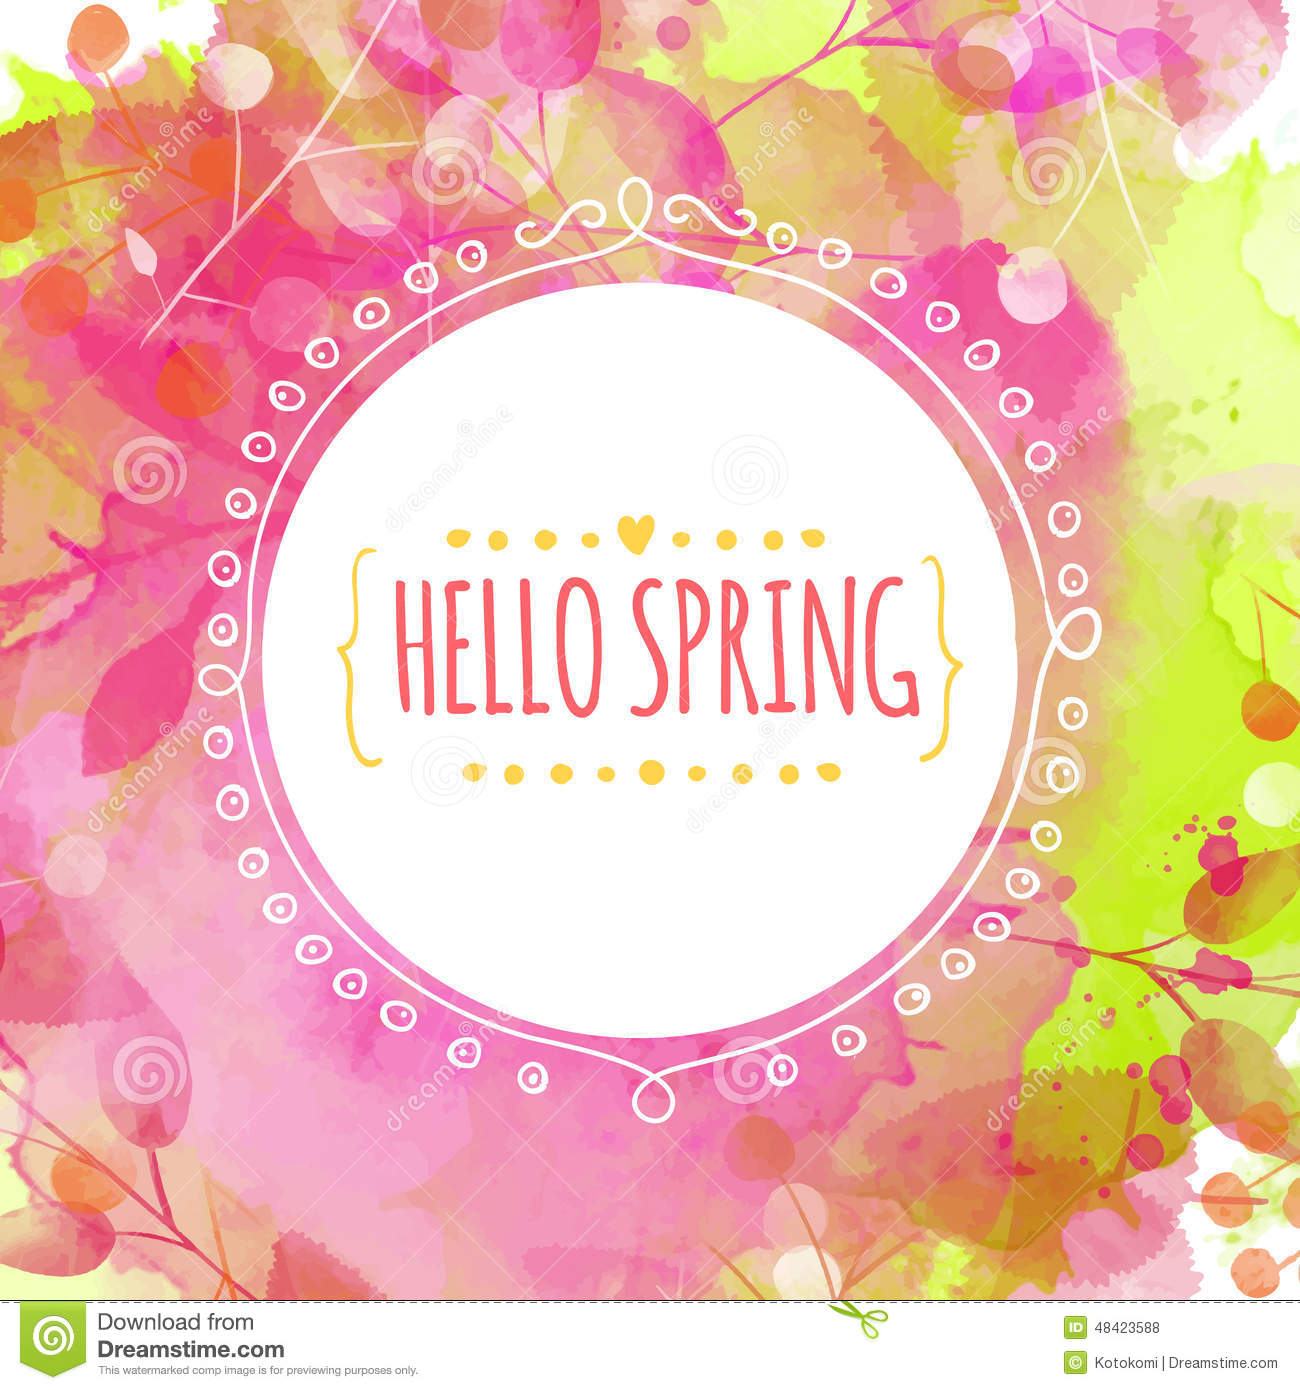 Creative green and pink texture with leaves and berries traces. Doodle circle frame with text hello spring. Vector design for